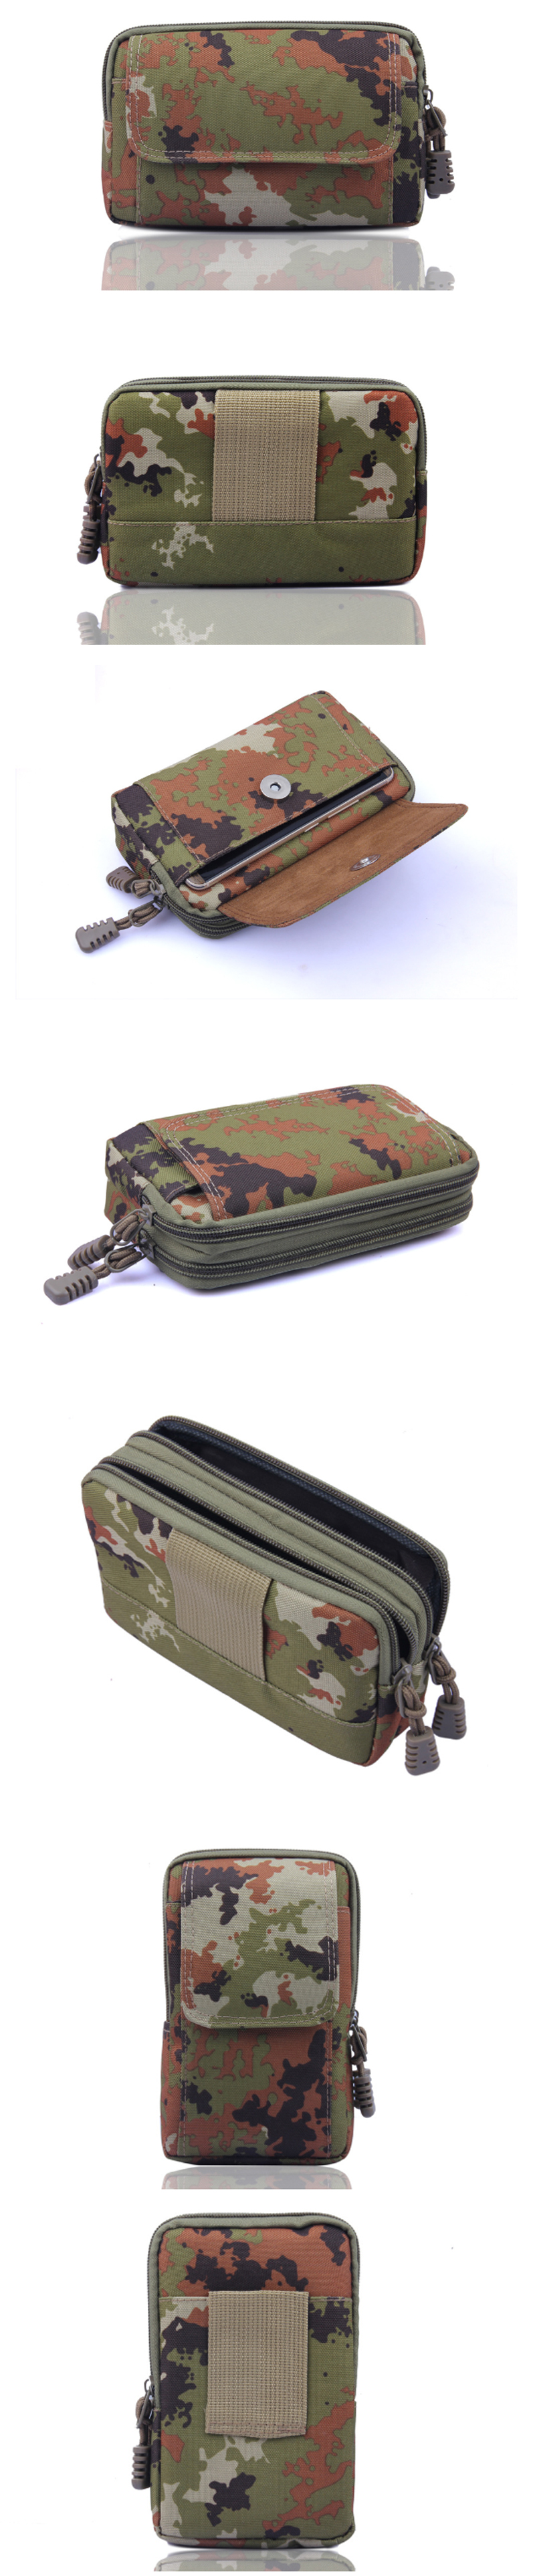 Couple Tactical Bag Camouflage Waist Bag Phone Bag Camping Hiking Hunting Pocket